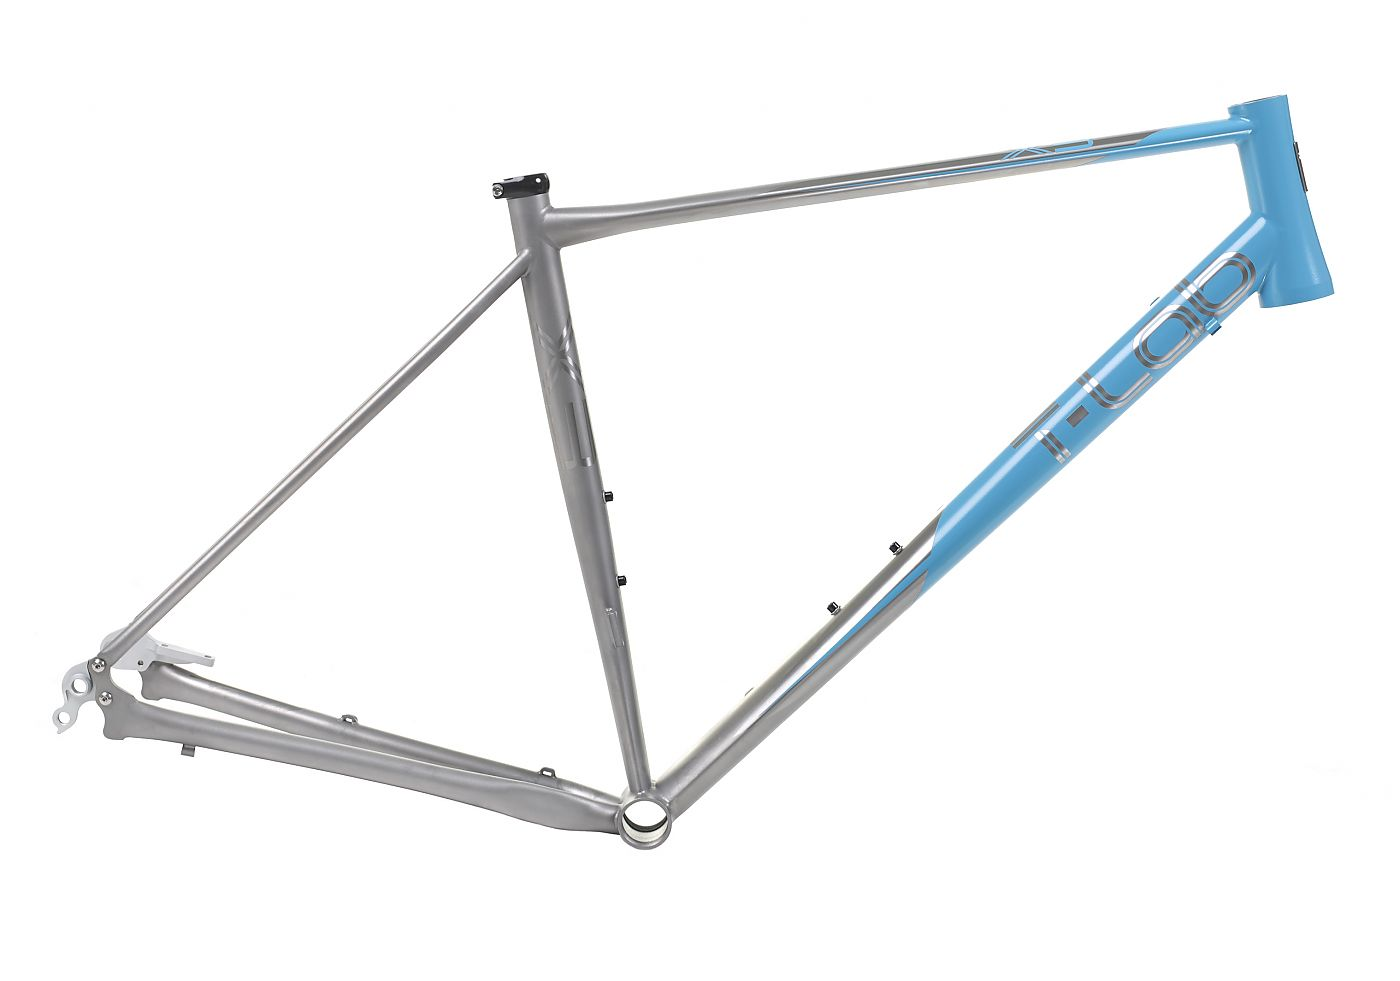 Guru Cycles founder and managers launch new titanium bike